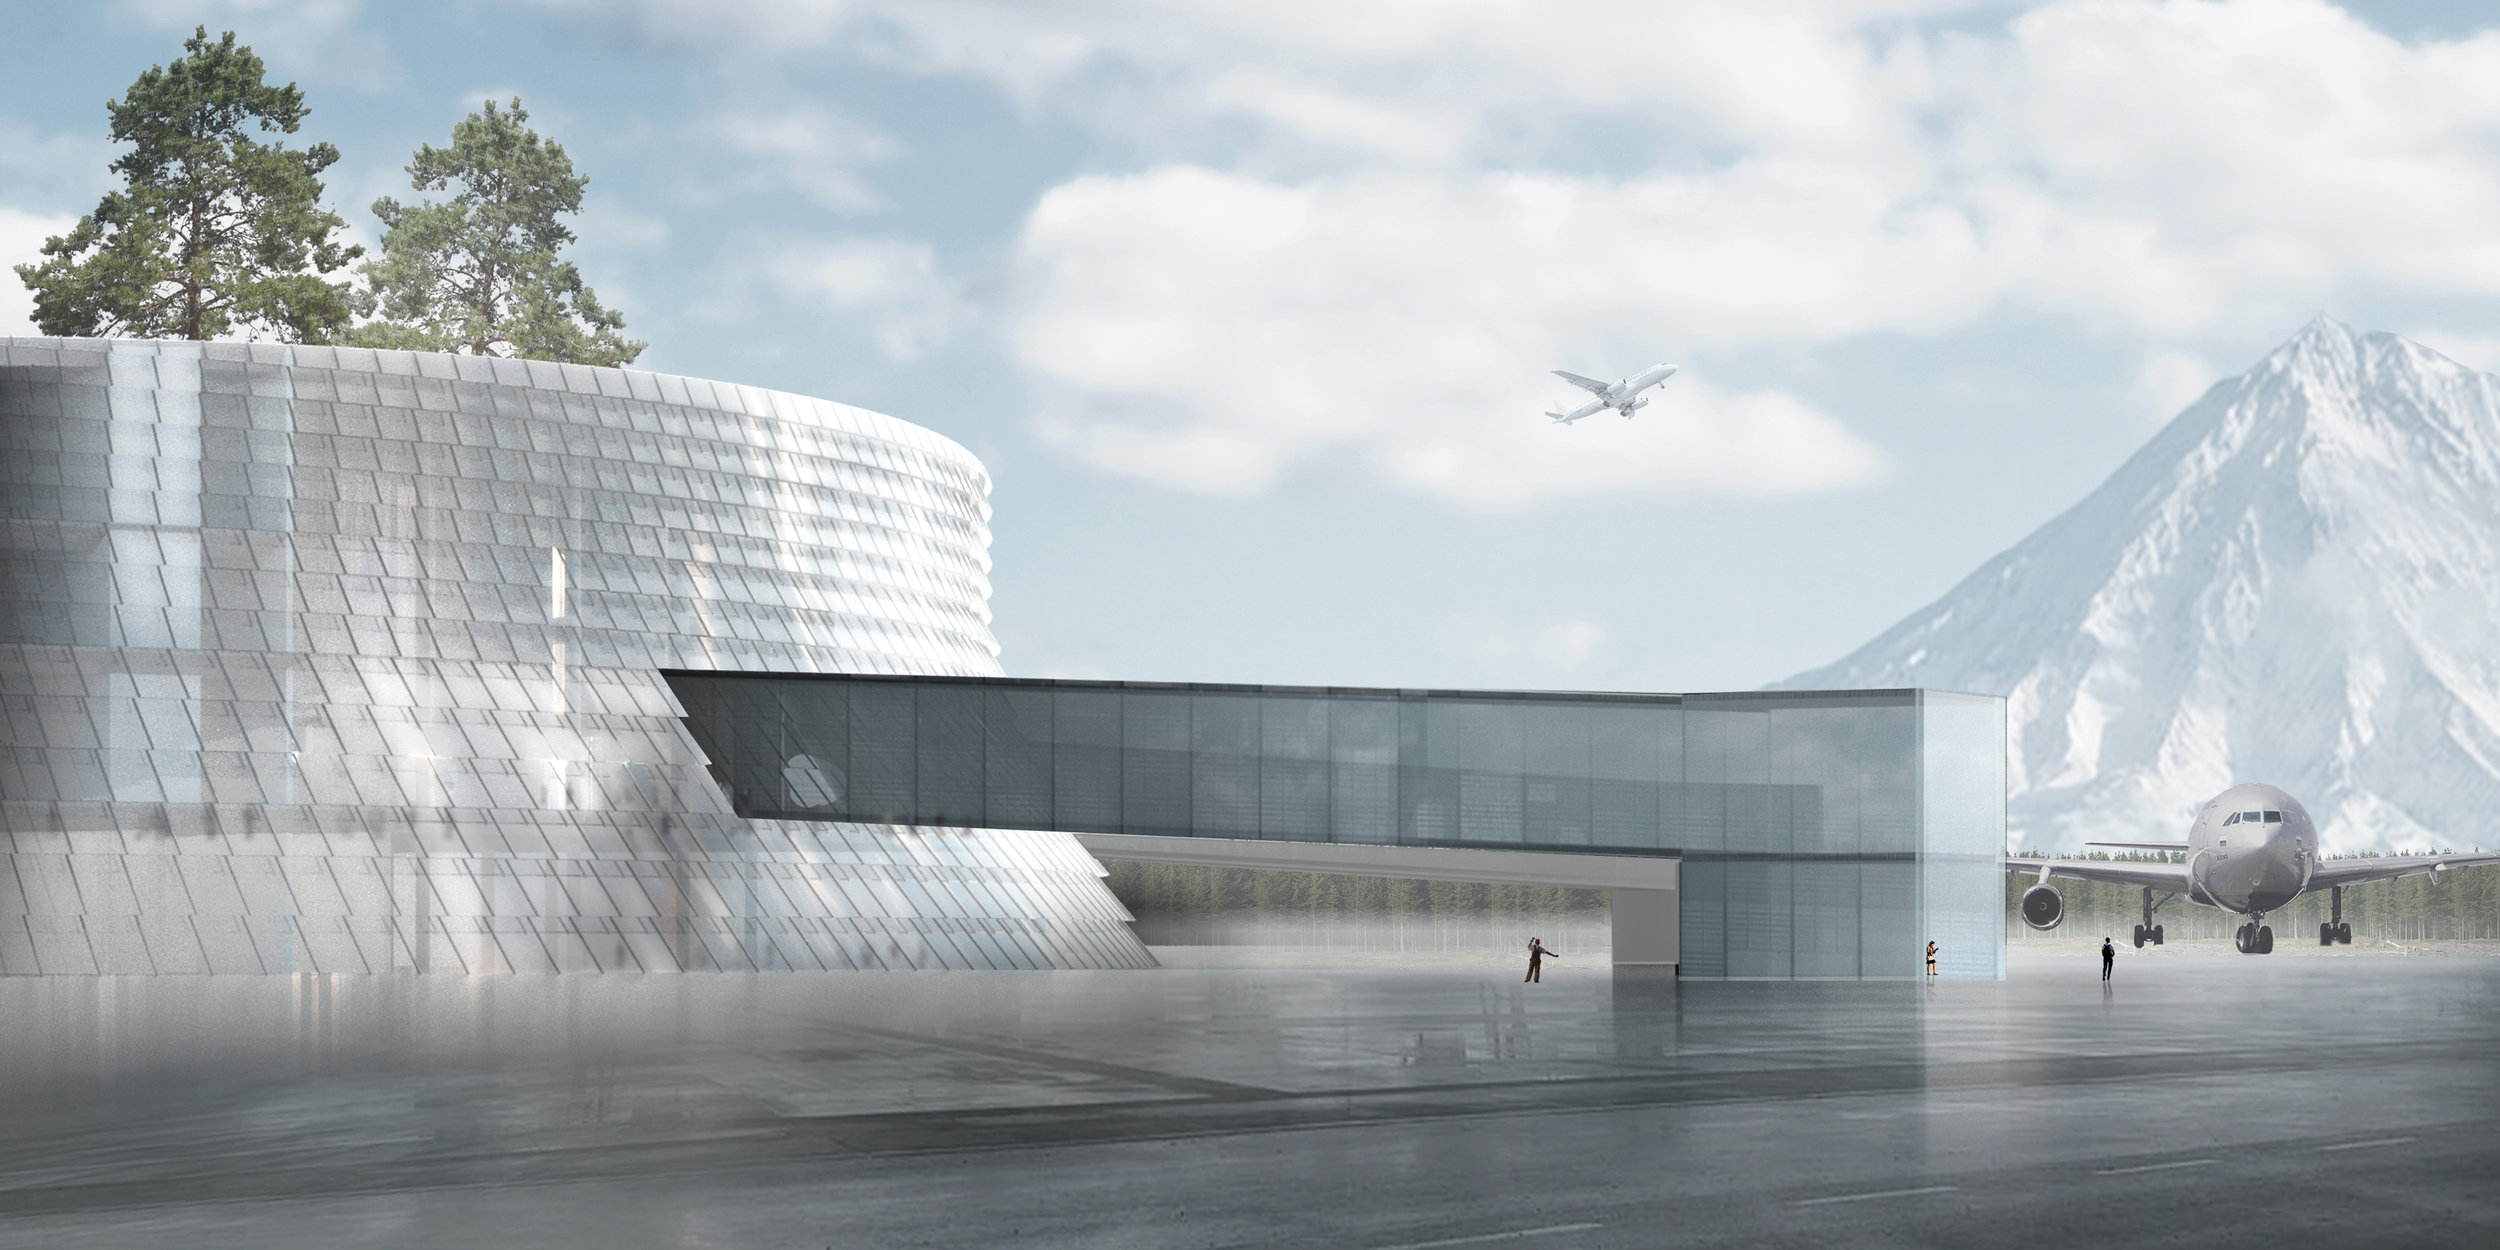 The projected new terminal at Elizovo airport, Petropavlovsk-Kamchatsky. Picture: Airport of the Regions